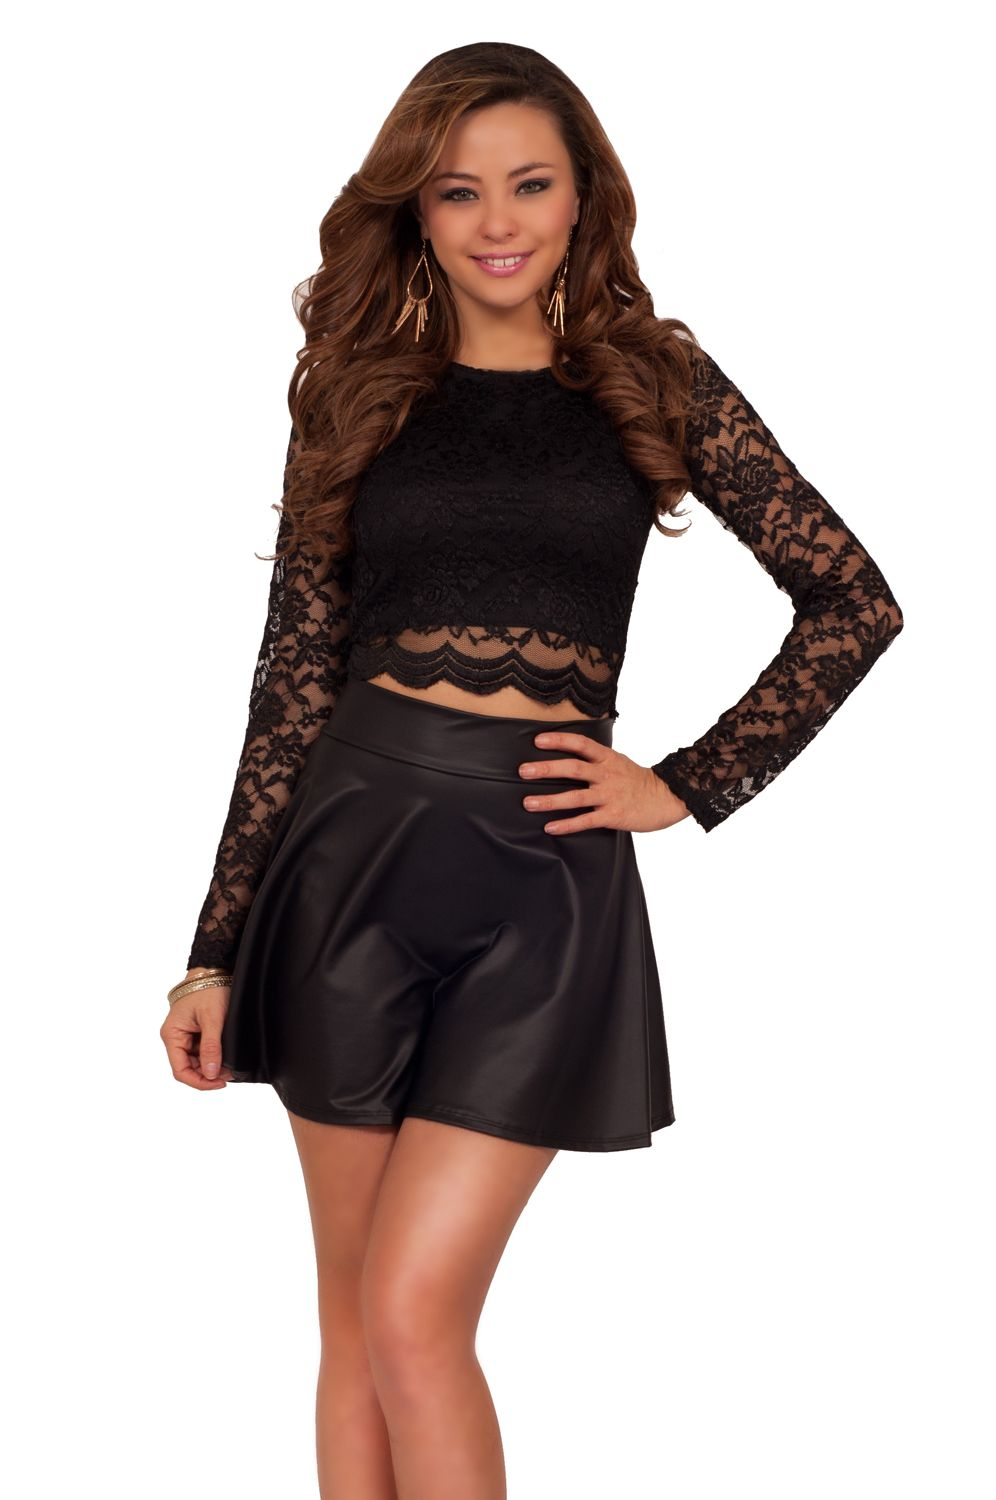 6265dba552358 Sexy-Long-Sleeve-Floral-Lace-Scallop-Hem-Party-Clubwear-Round-Neck-Crop-Top